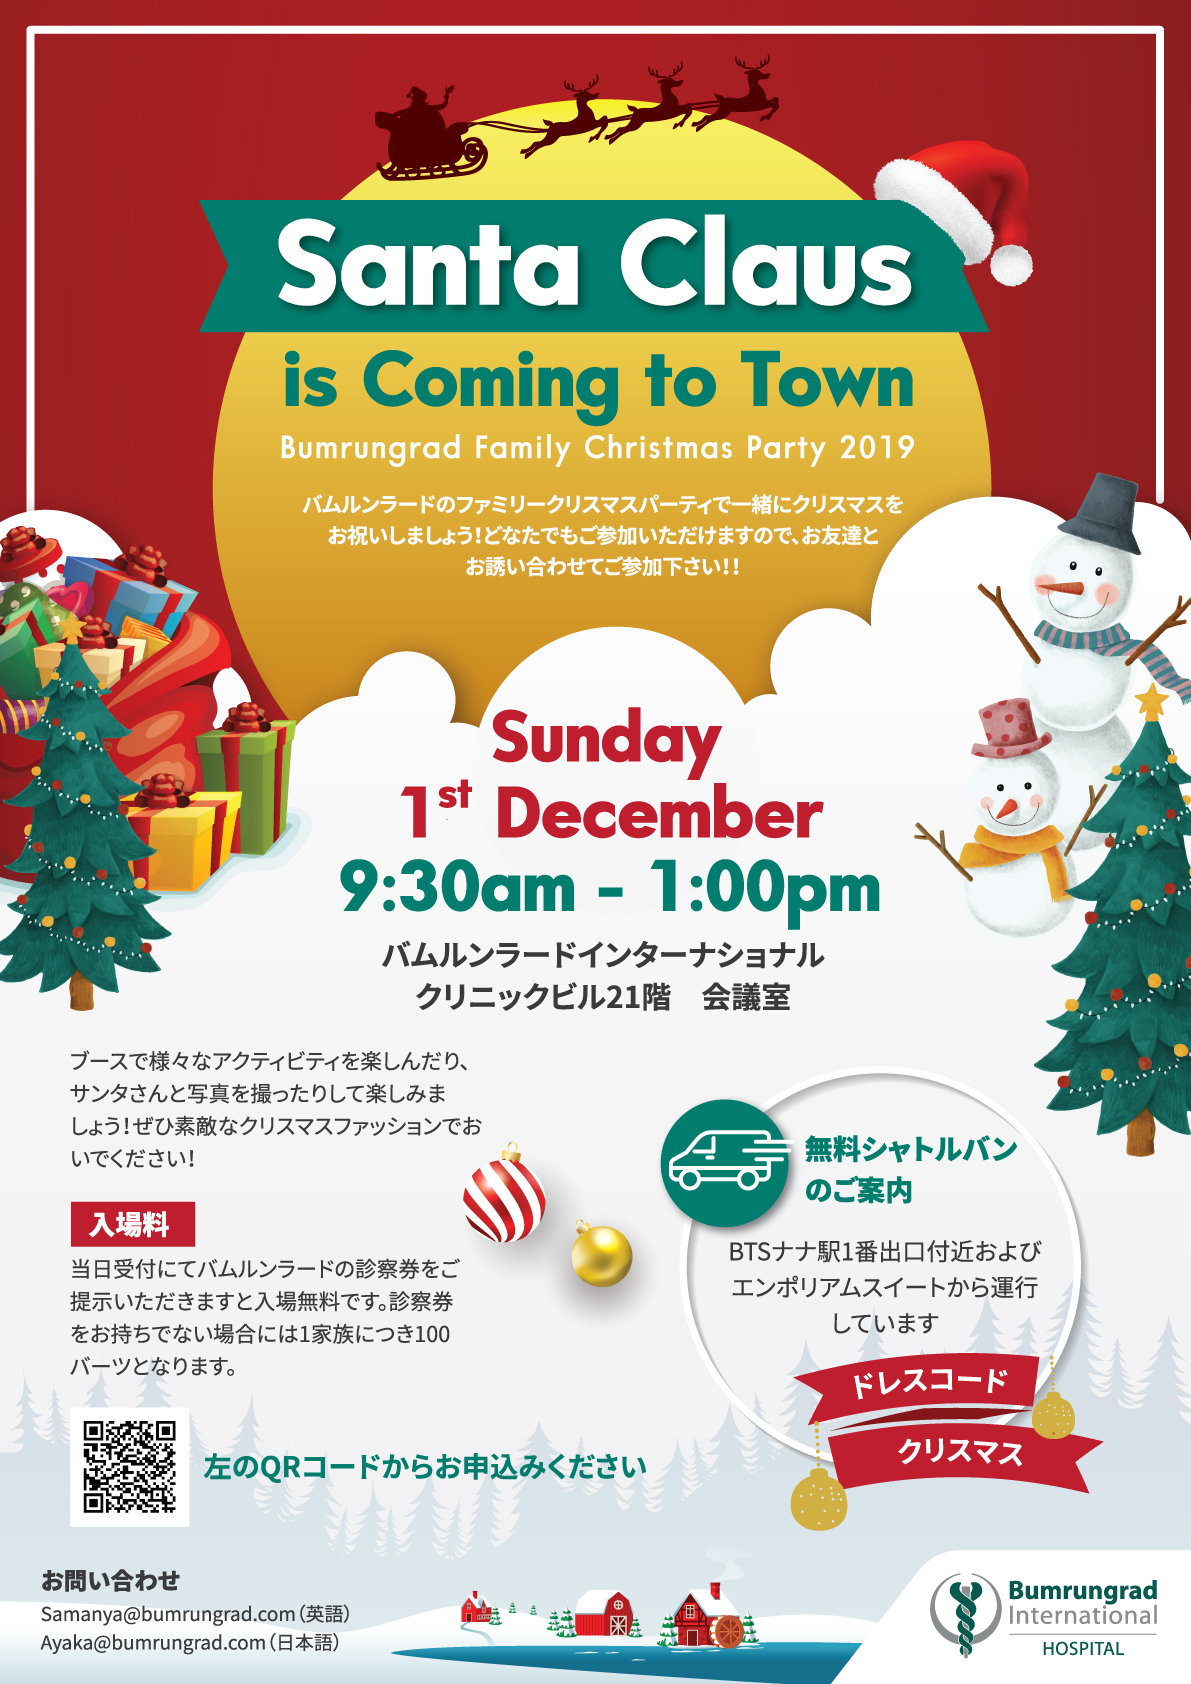 【イベント情報】Bumrungrad Family Christmas Party 2019